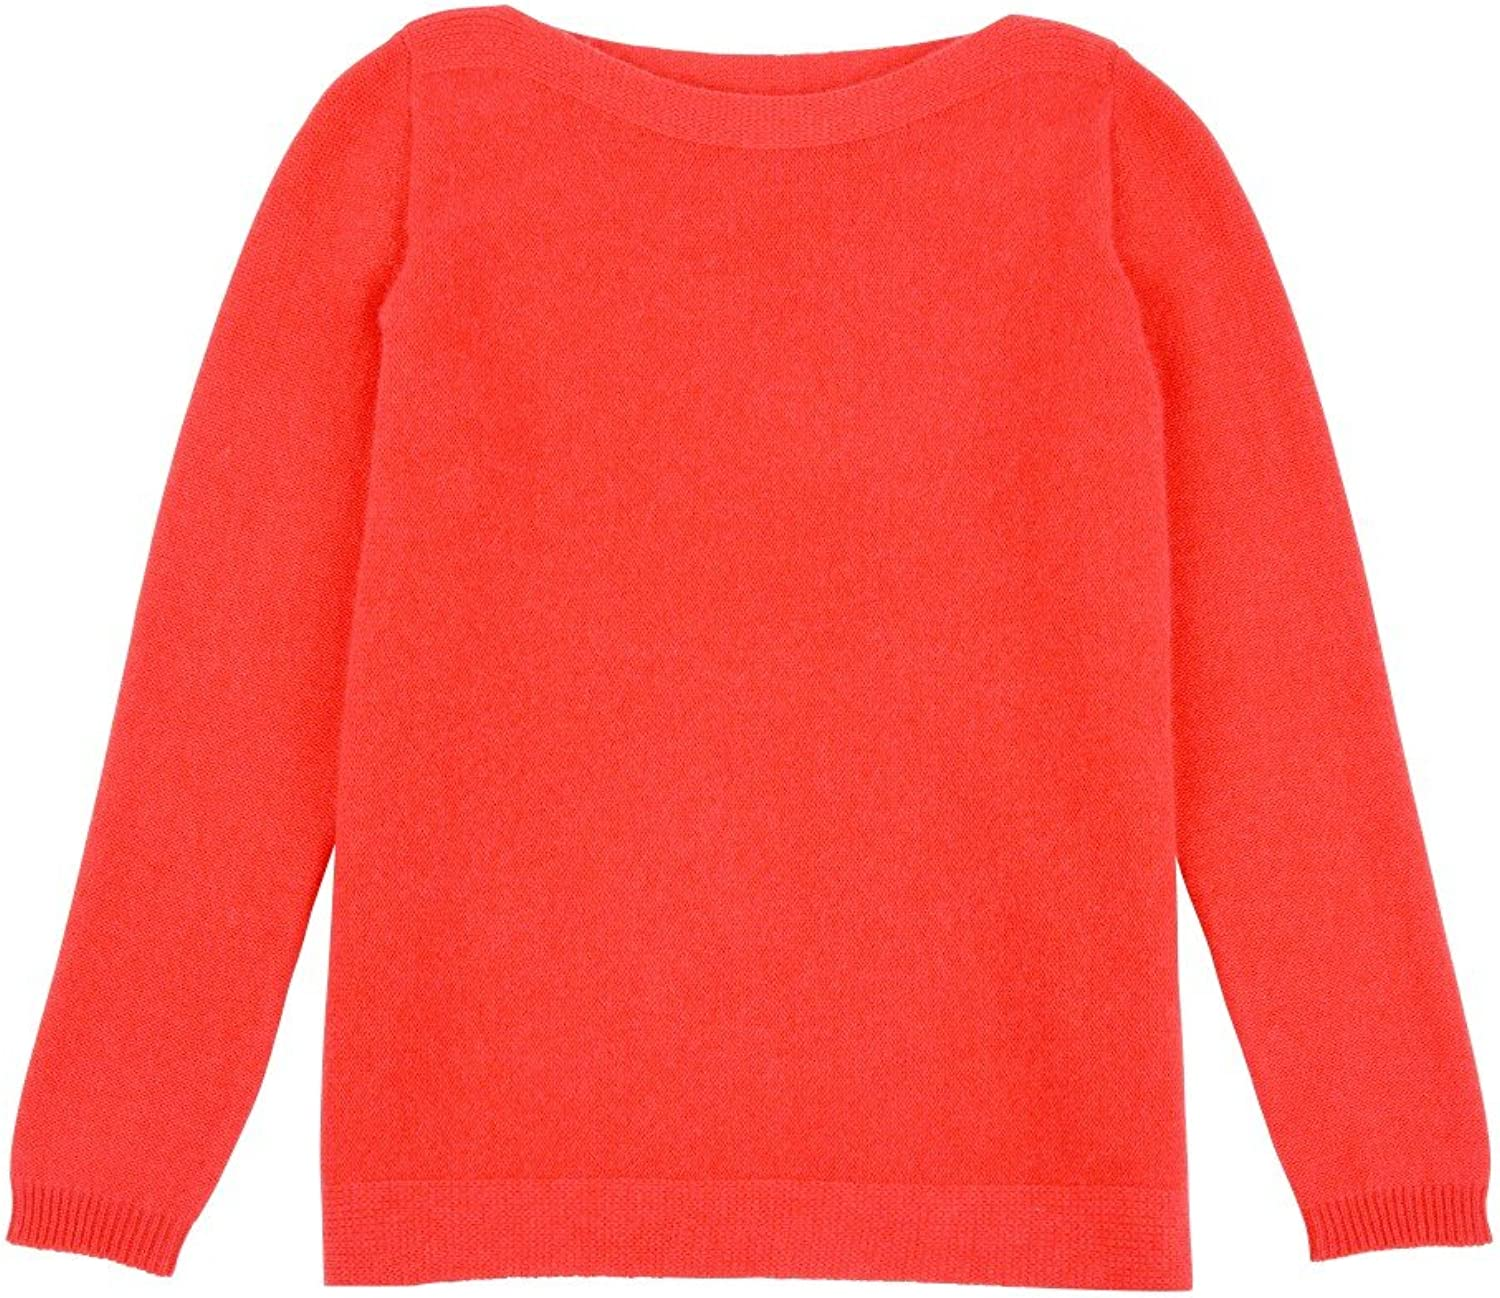 LES POULETTES Womens Sweater 100% Cashmere 4 Plys  Coral Red